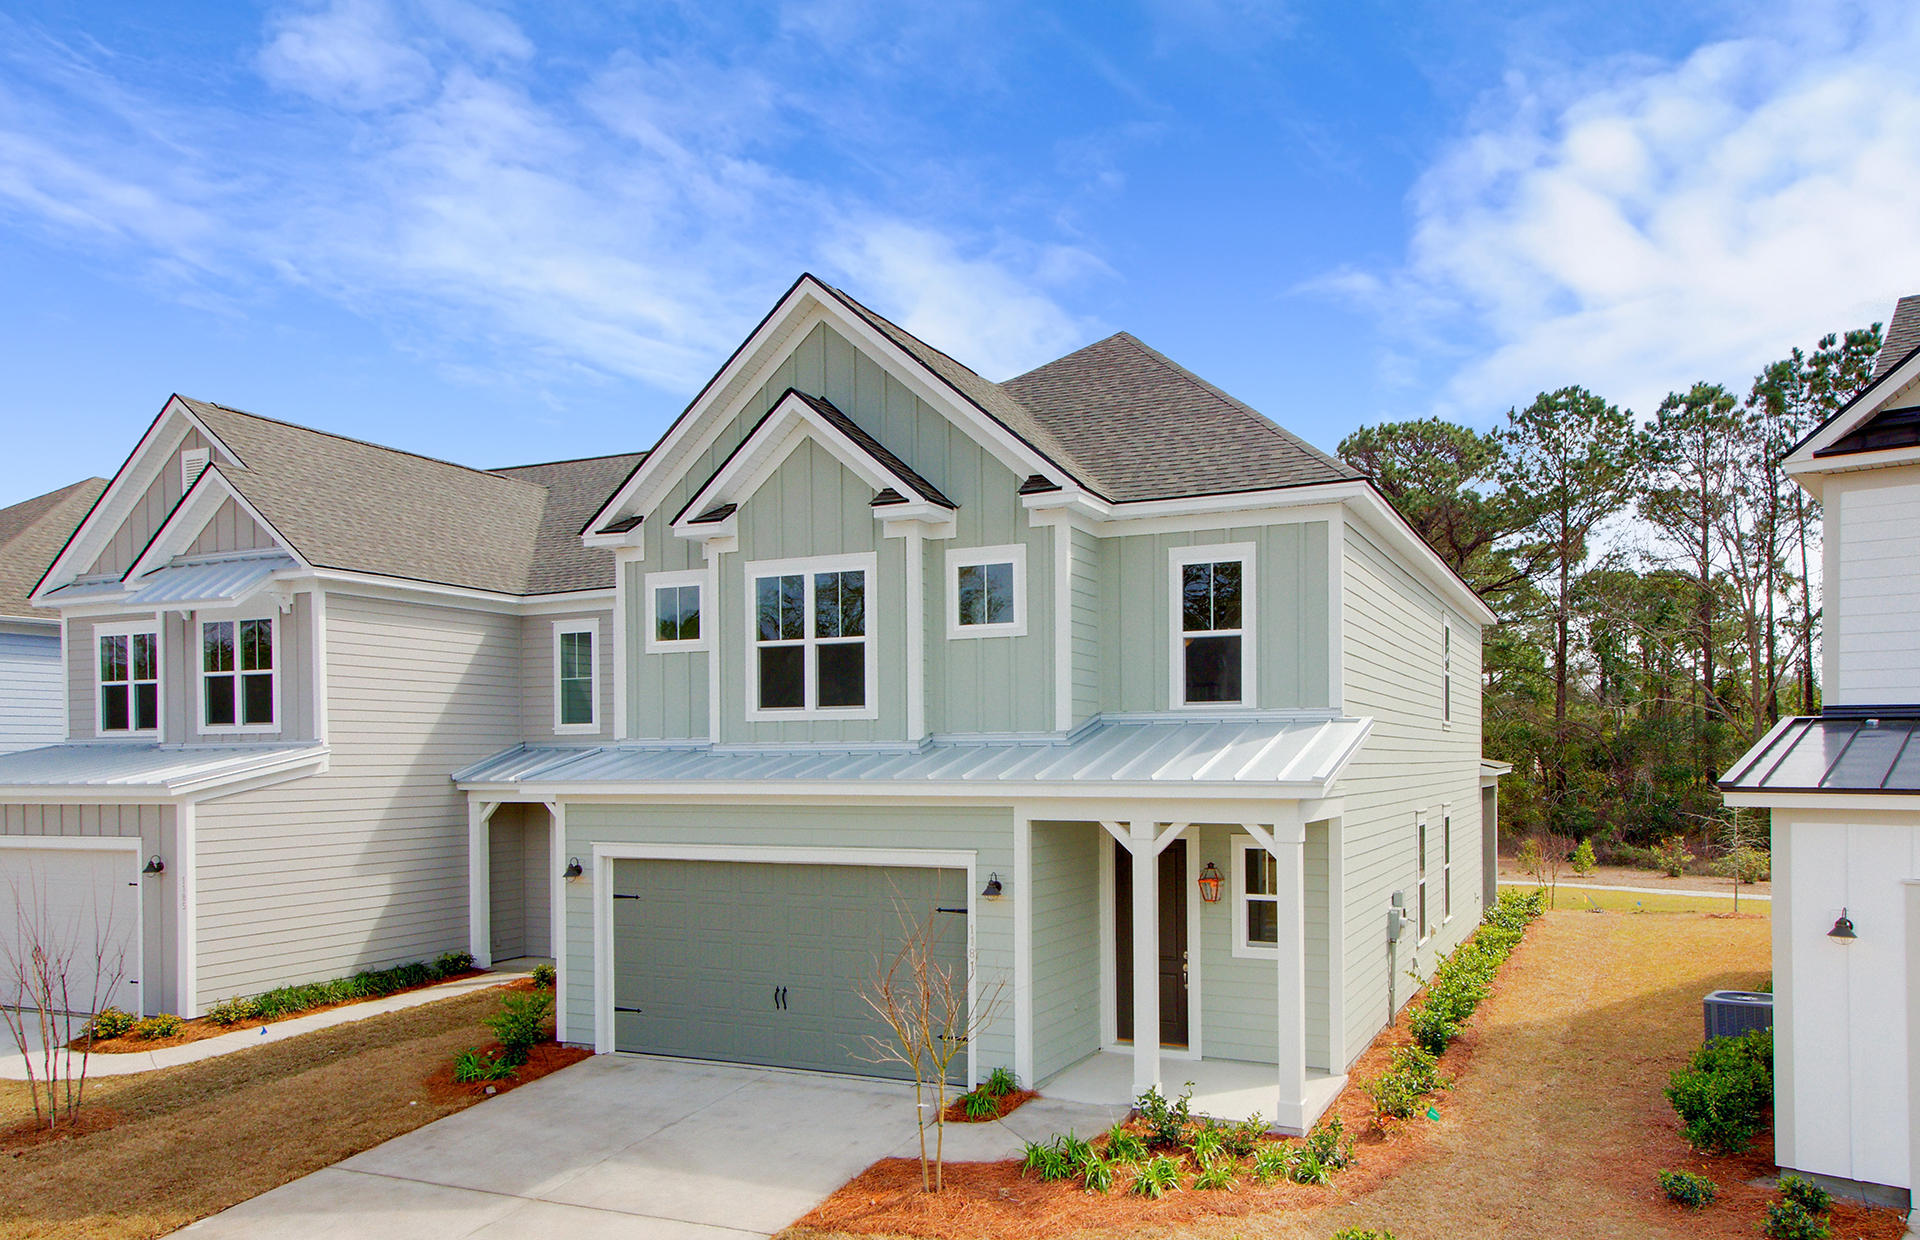 Pointe at Primus Homes For Sale - 1181 Penderlee, Mount Pleasant, SC - 23